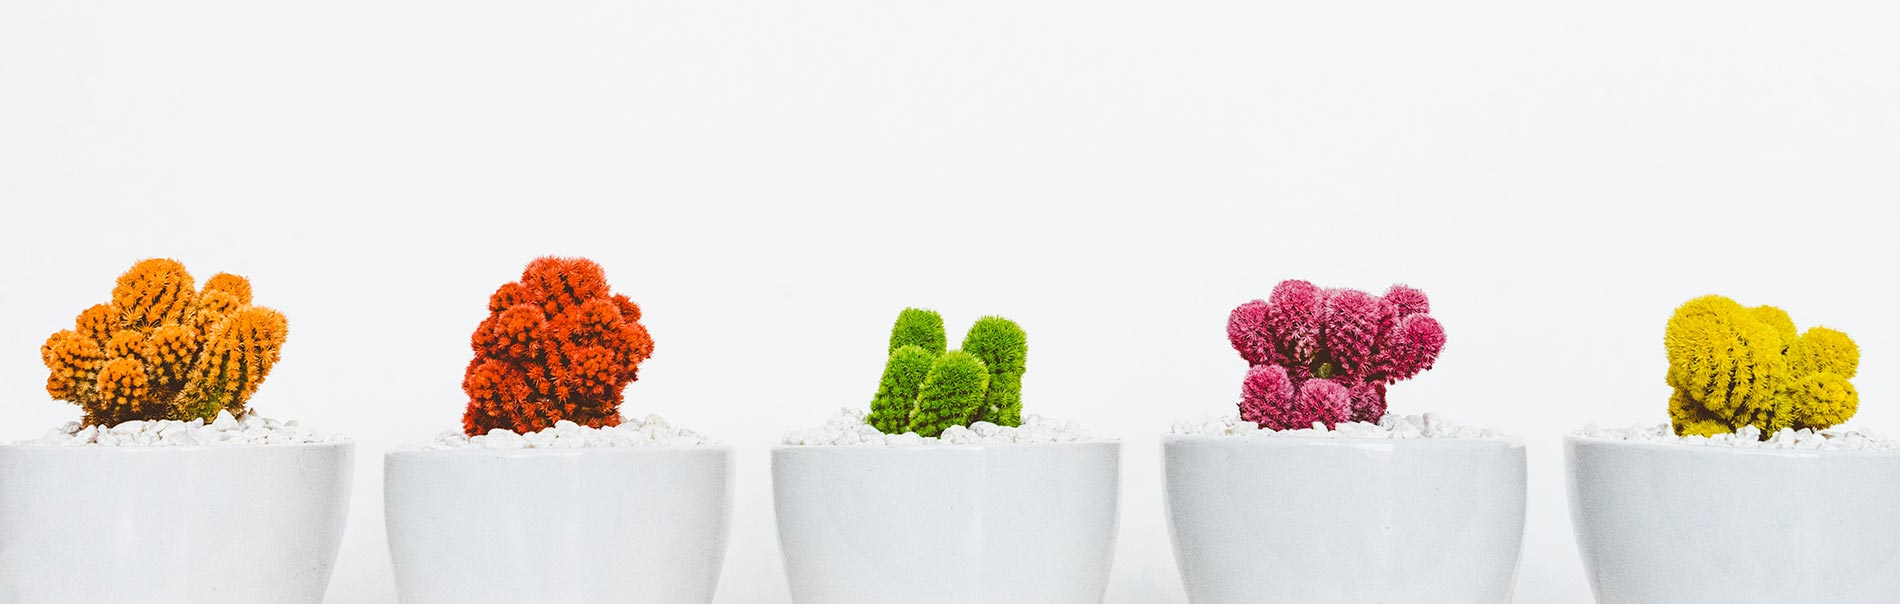 multicolored cactuses arranged in a row